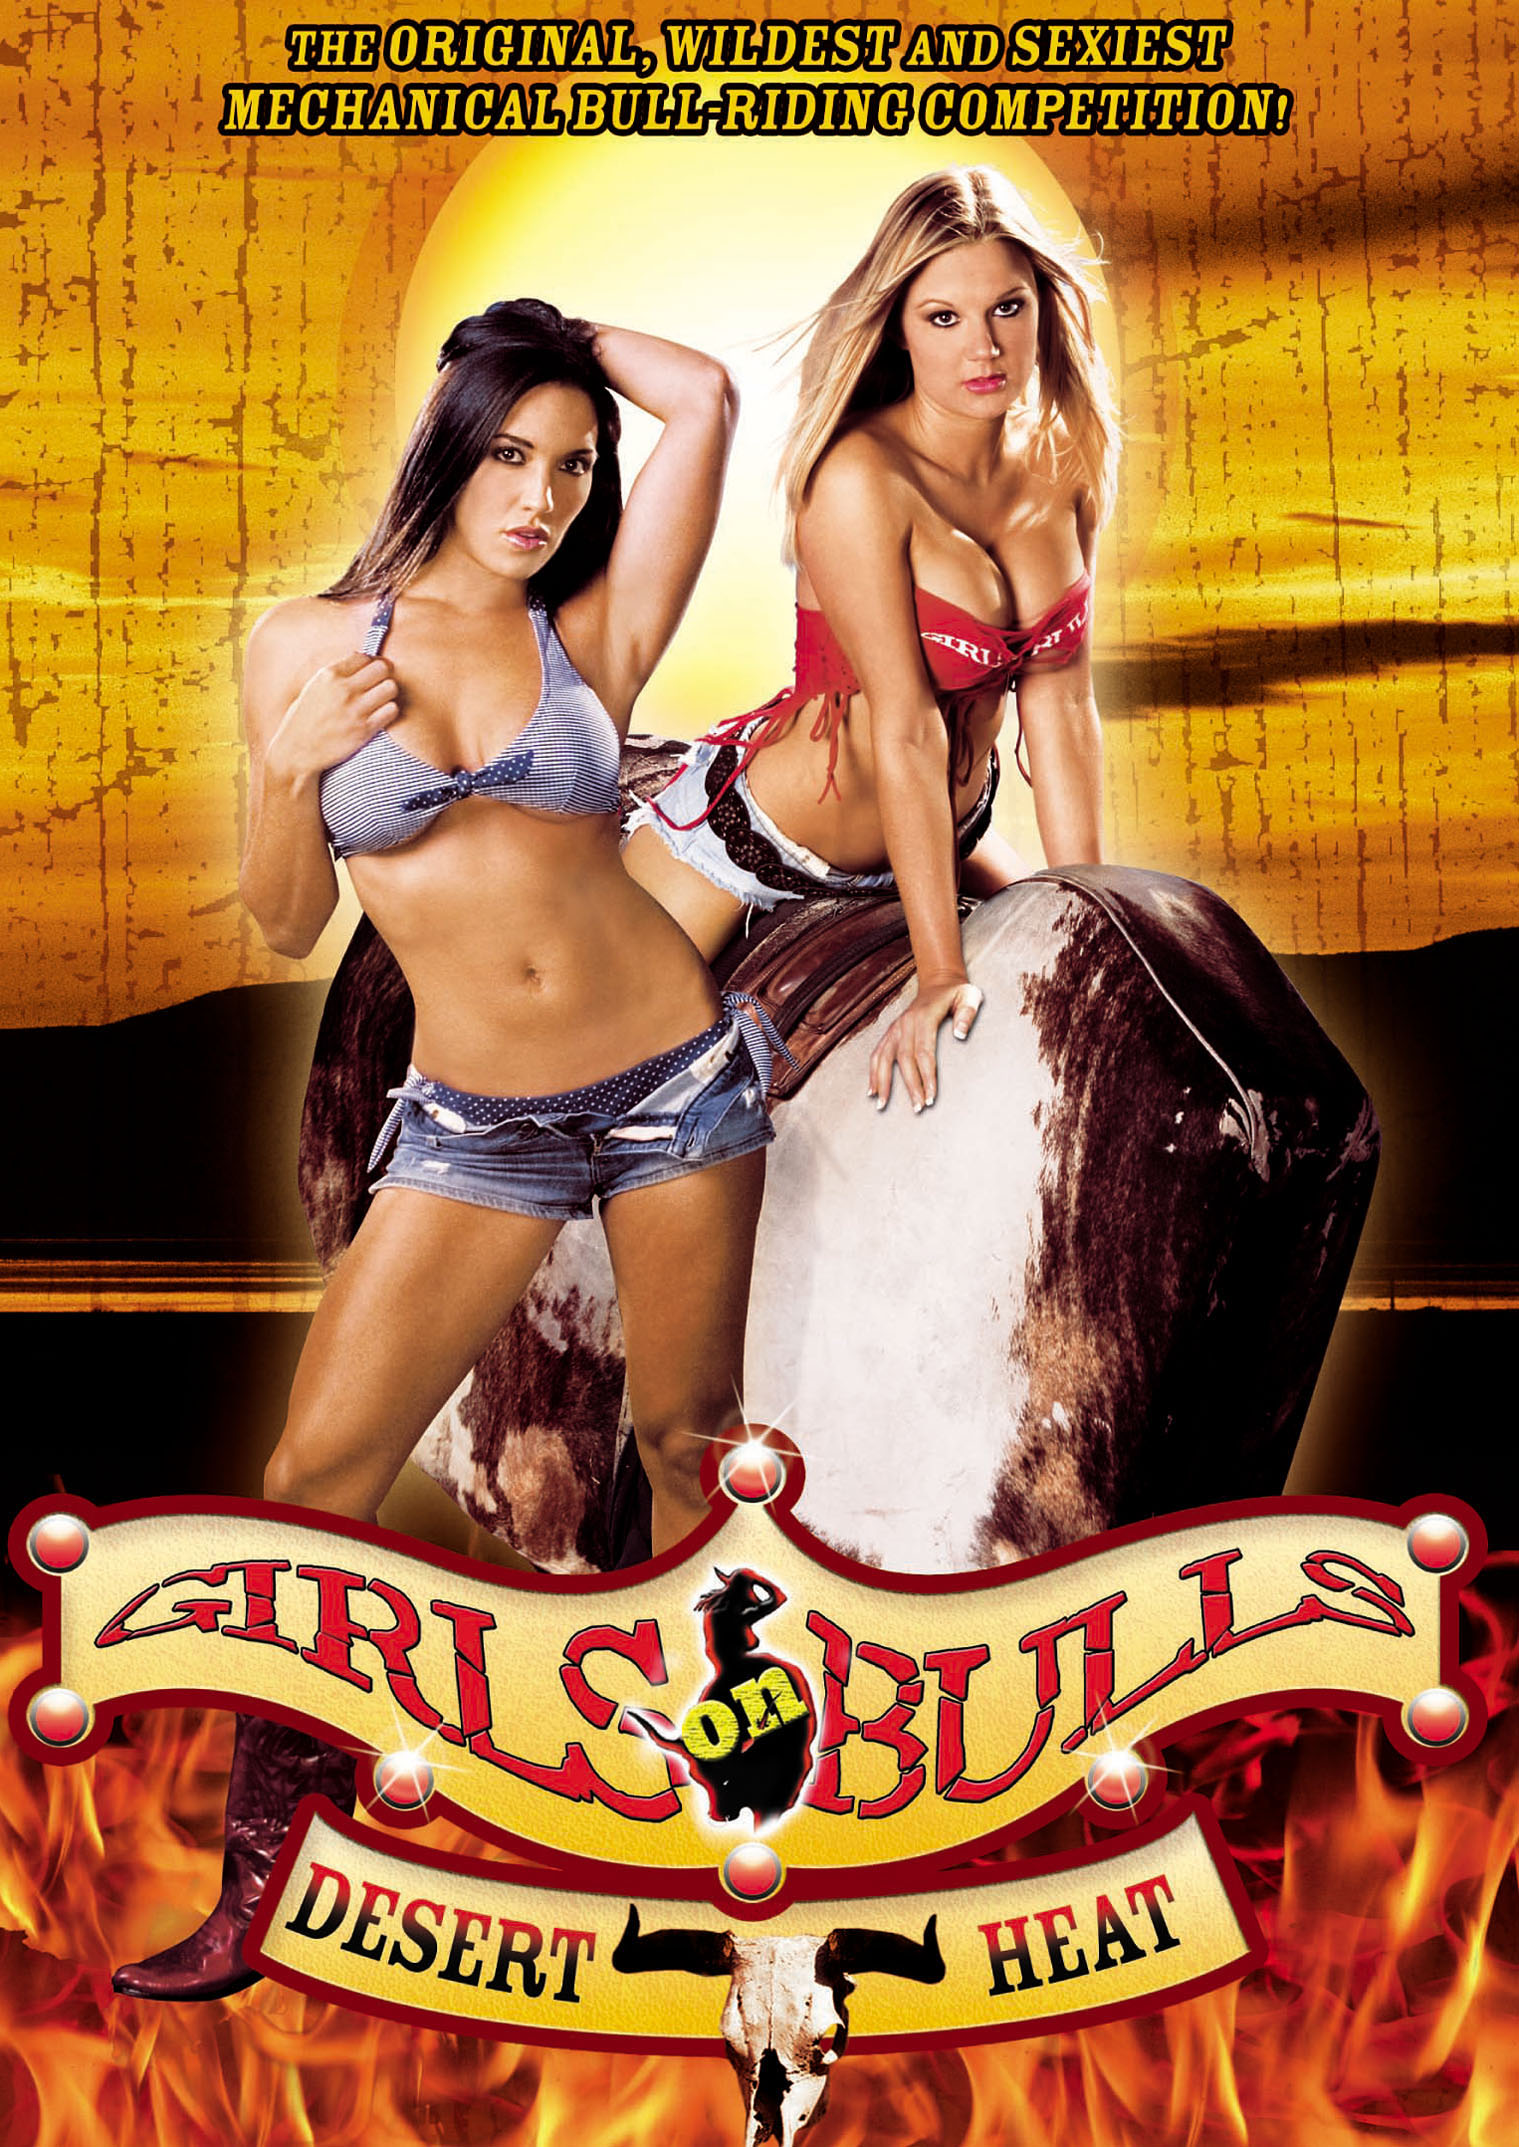 Girls on Bulls: Desert Heat